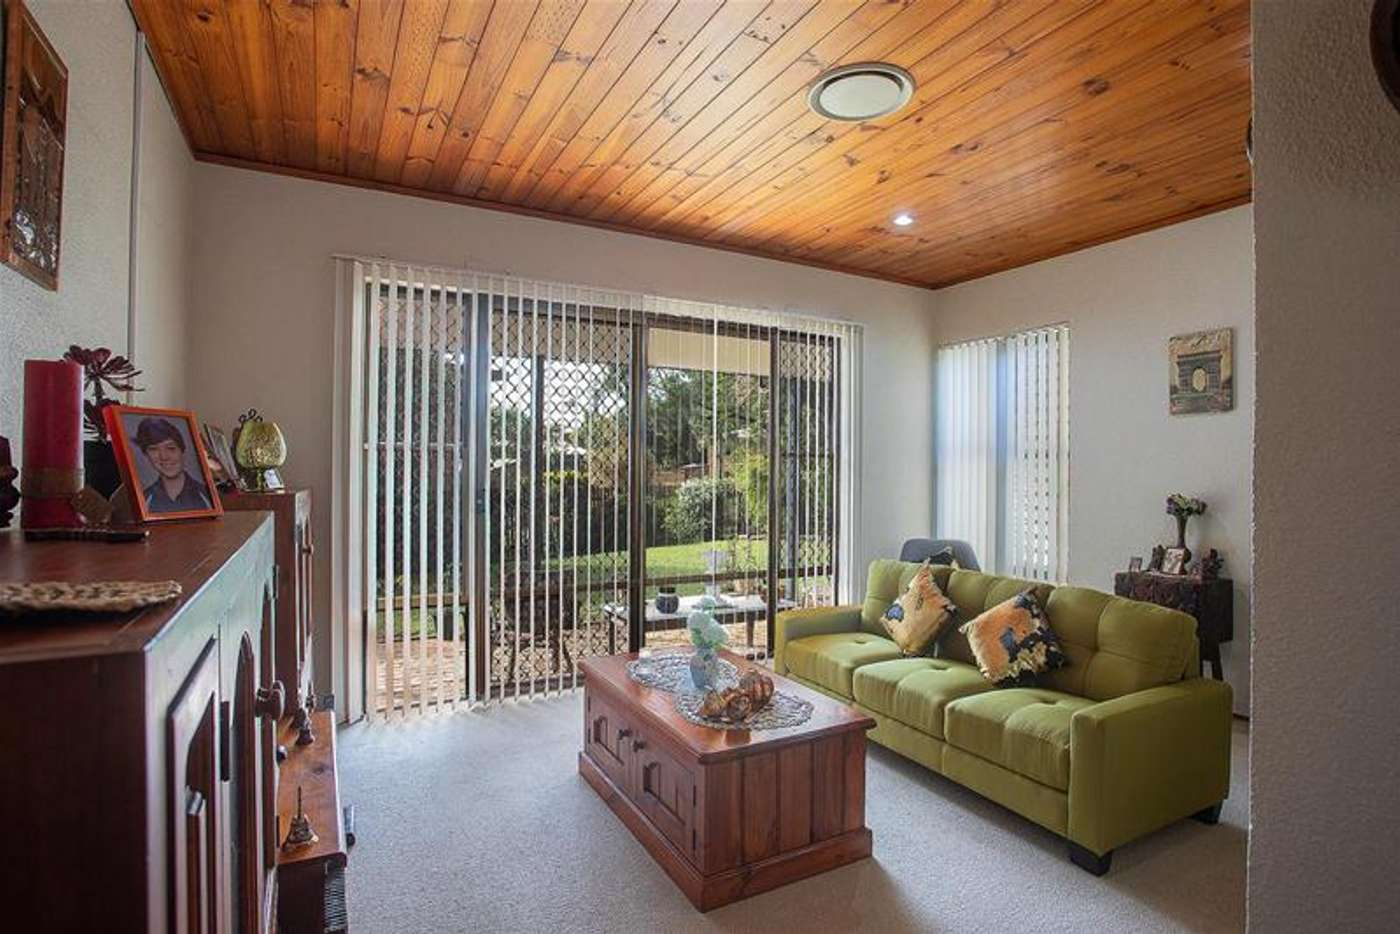 Main view of Homely house listing, 9 Andrew Milne Drive, Mount Pleasant QLD 4740